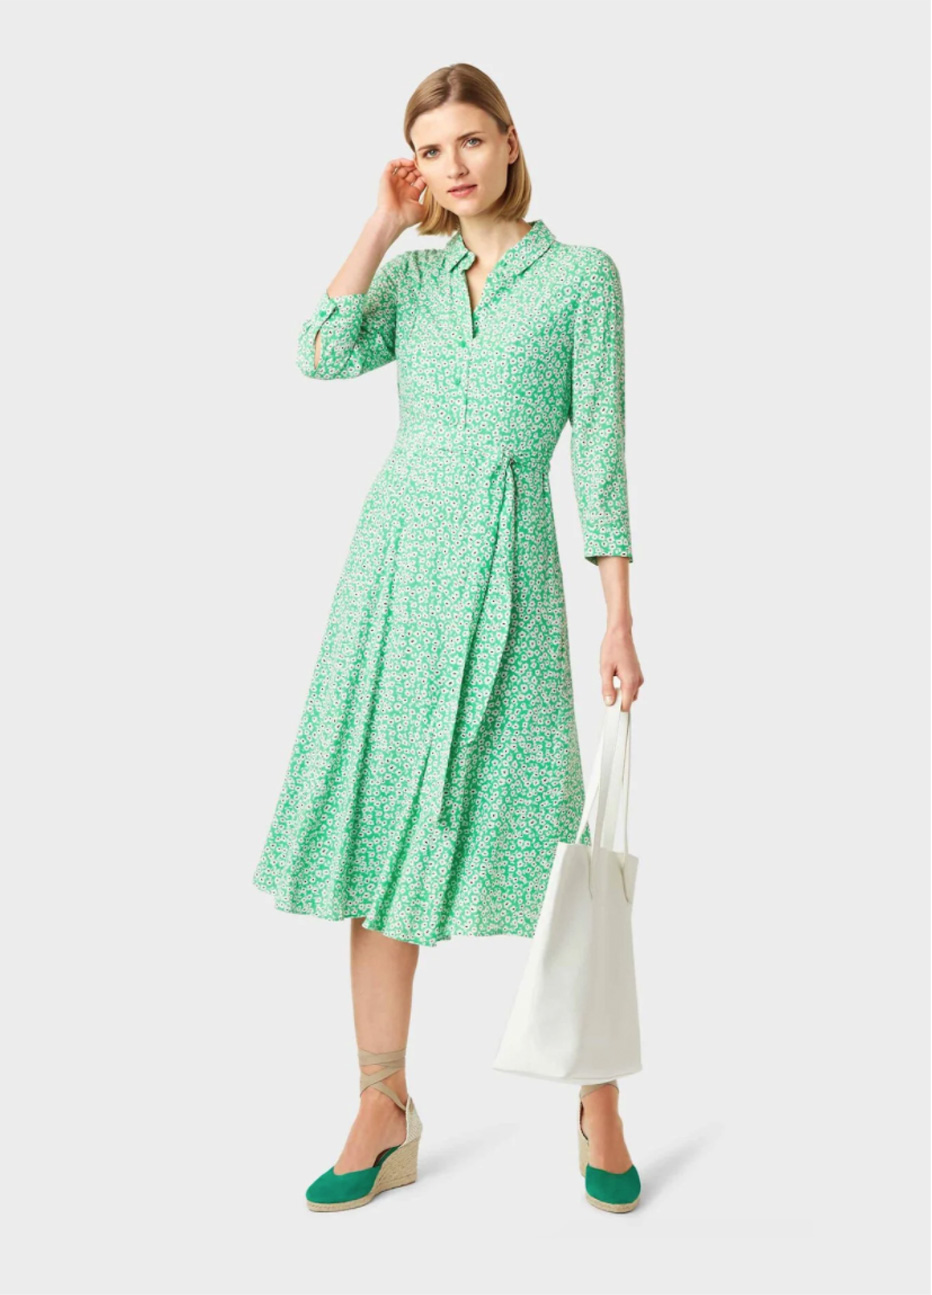 Mid-sleeved fit and flare shirt dress in green with a waist-tie detail paired with green wedge espadrilles with a white leather tote bag, a smart casual look for women by Hobbs.